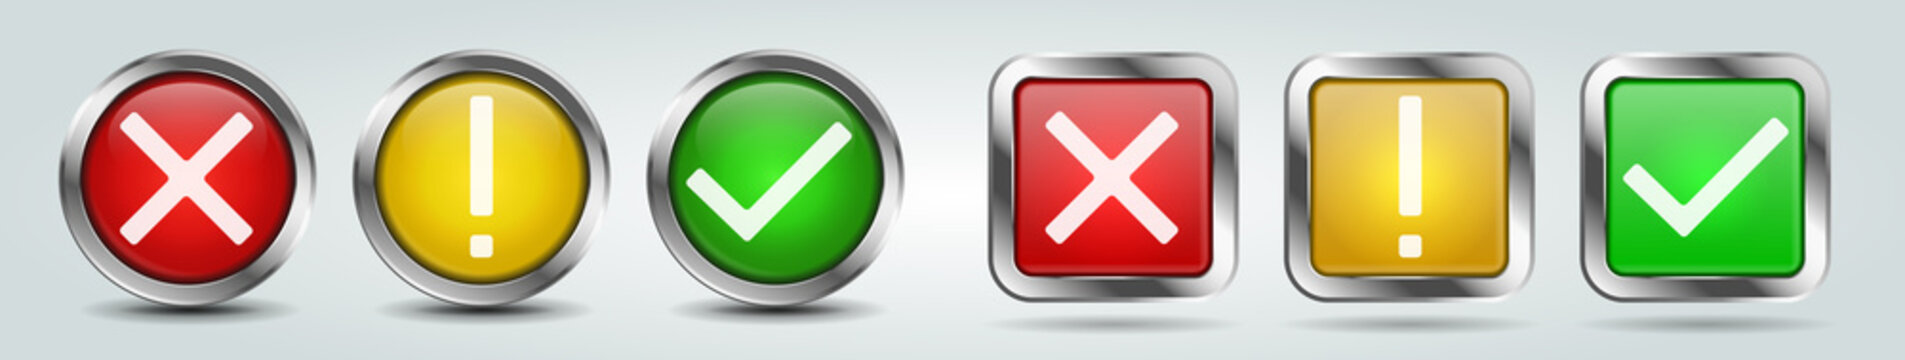 Status checkmark voting buttons